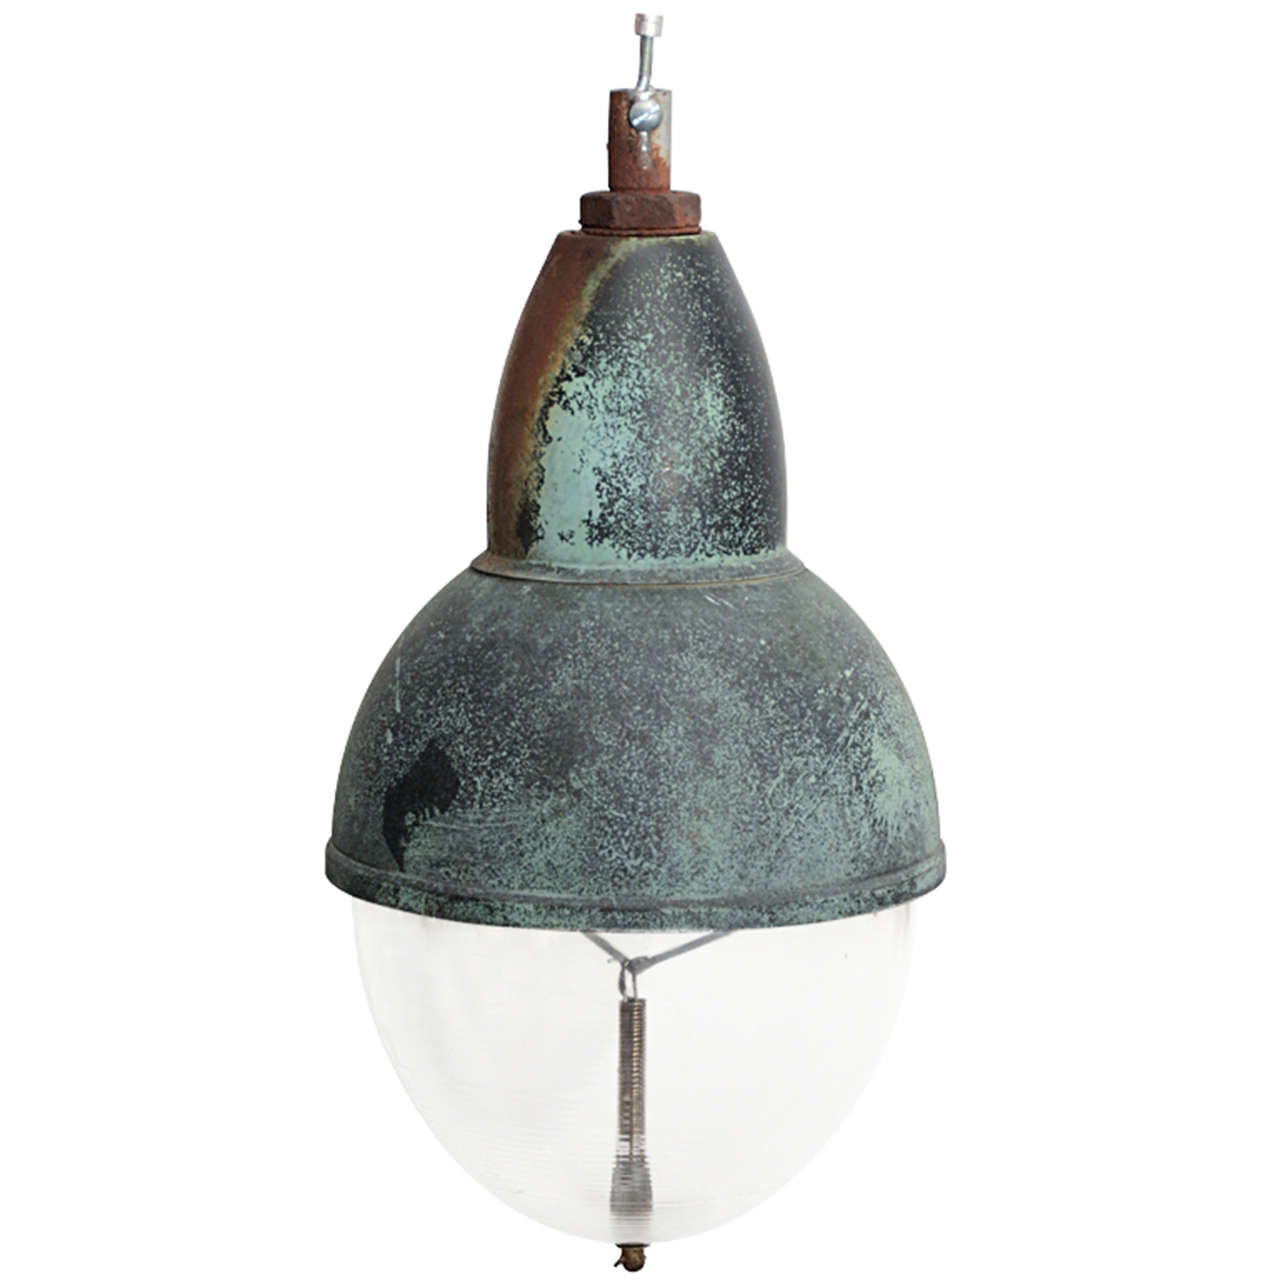 Vintage Copper Pendant Light With Glass Shade For Sale At 1stdibs